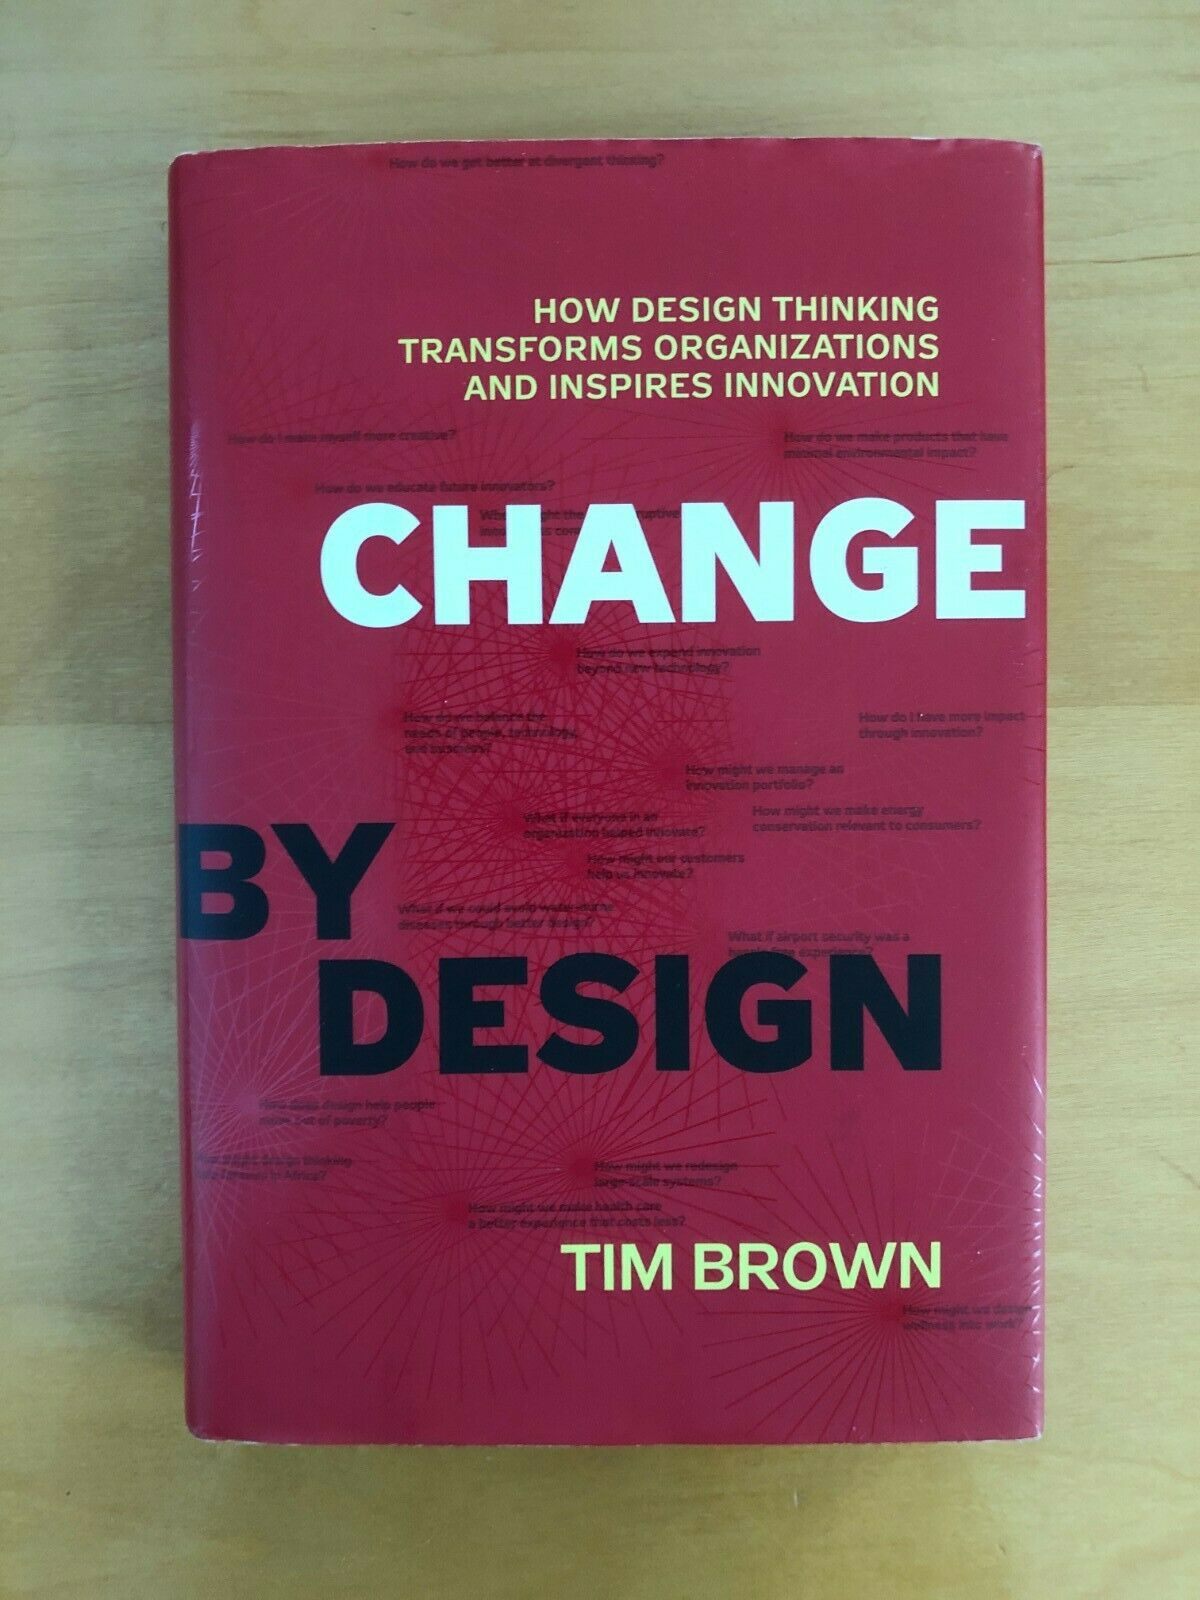 Change By Design How Design Thinking Transforms Organizations And Inspires Innovation By Tim Brown 2009 Hardcover For Sale Online Ebay